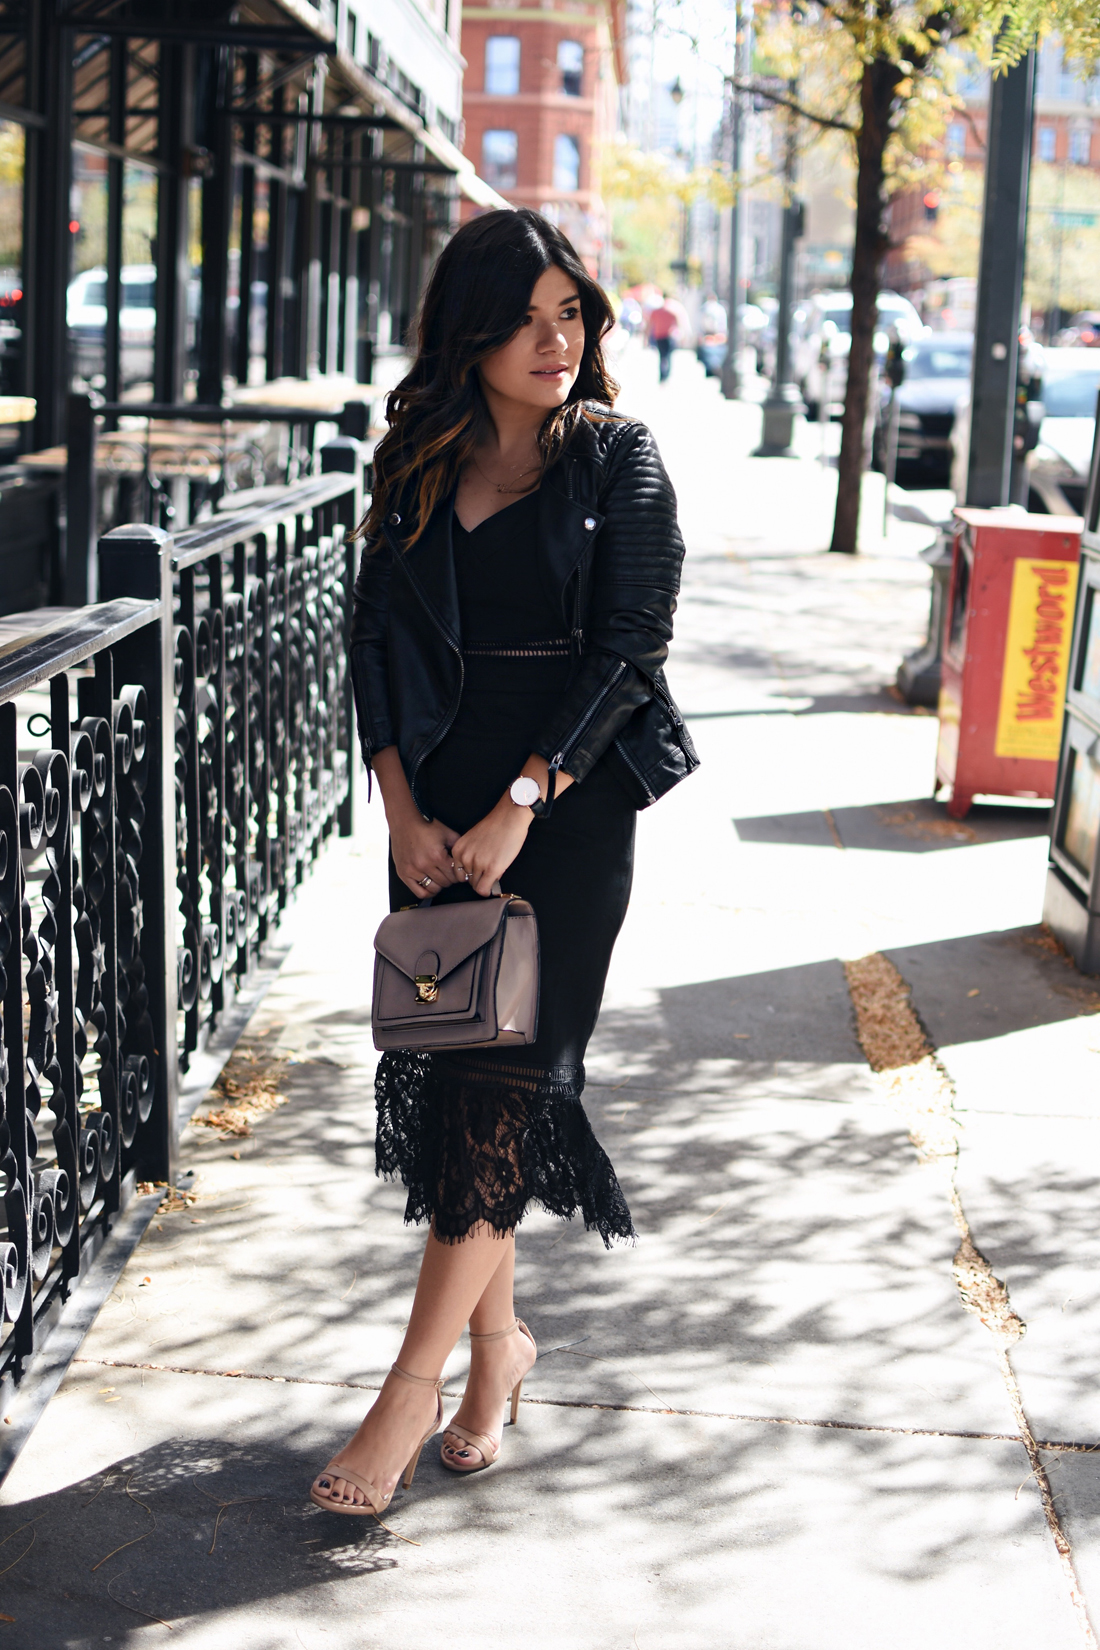 Carolina Hellal of Chic Talk wearing a Chicwish black lace dress, Topshop faux leather jacket, Mellow World bag and Steve Madden nude sandals